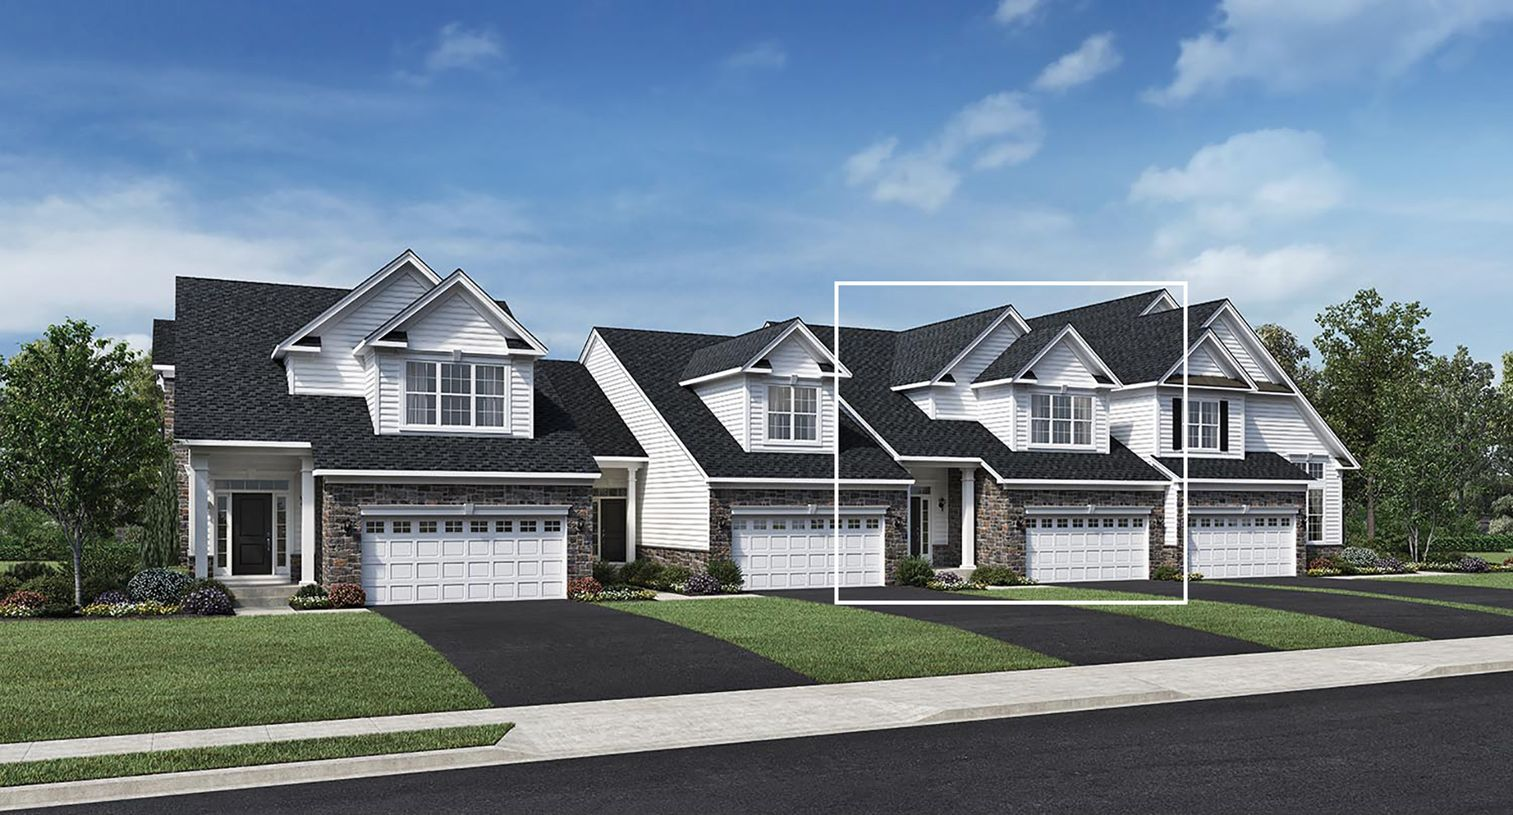 New Construction Homes Plans In Limerick Pa 1 743 Homes